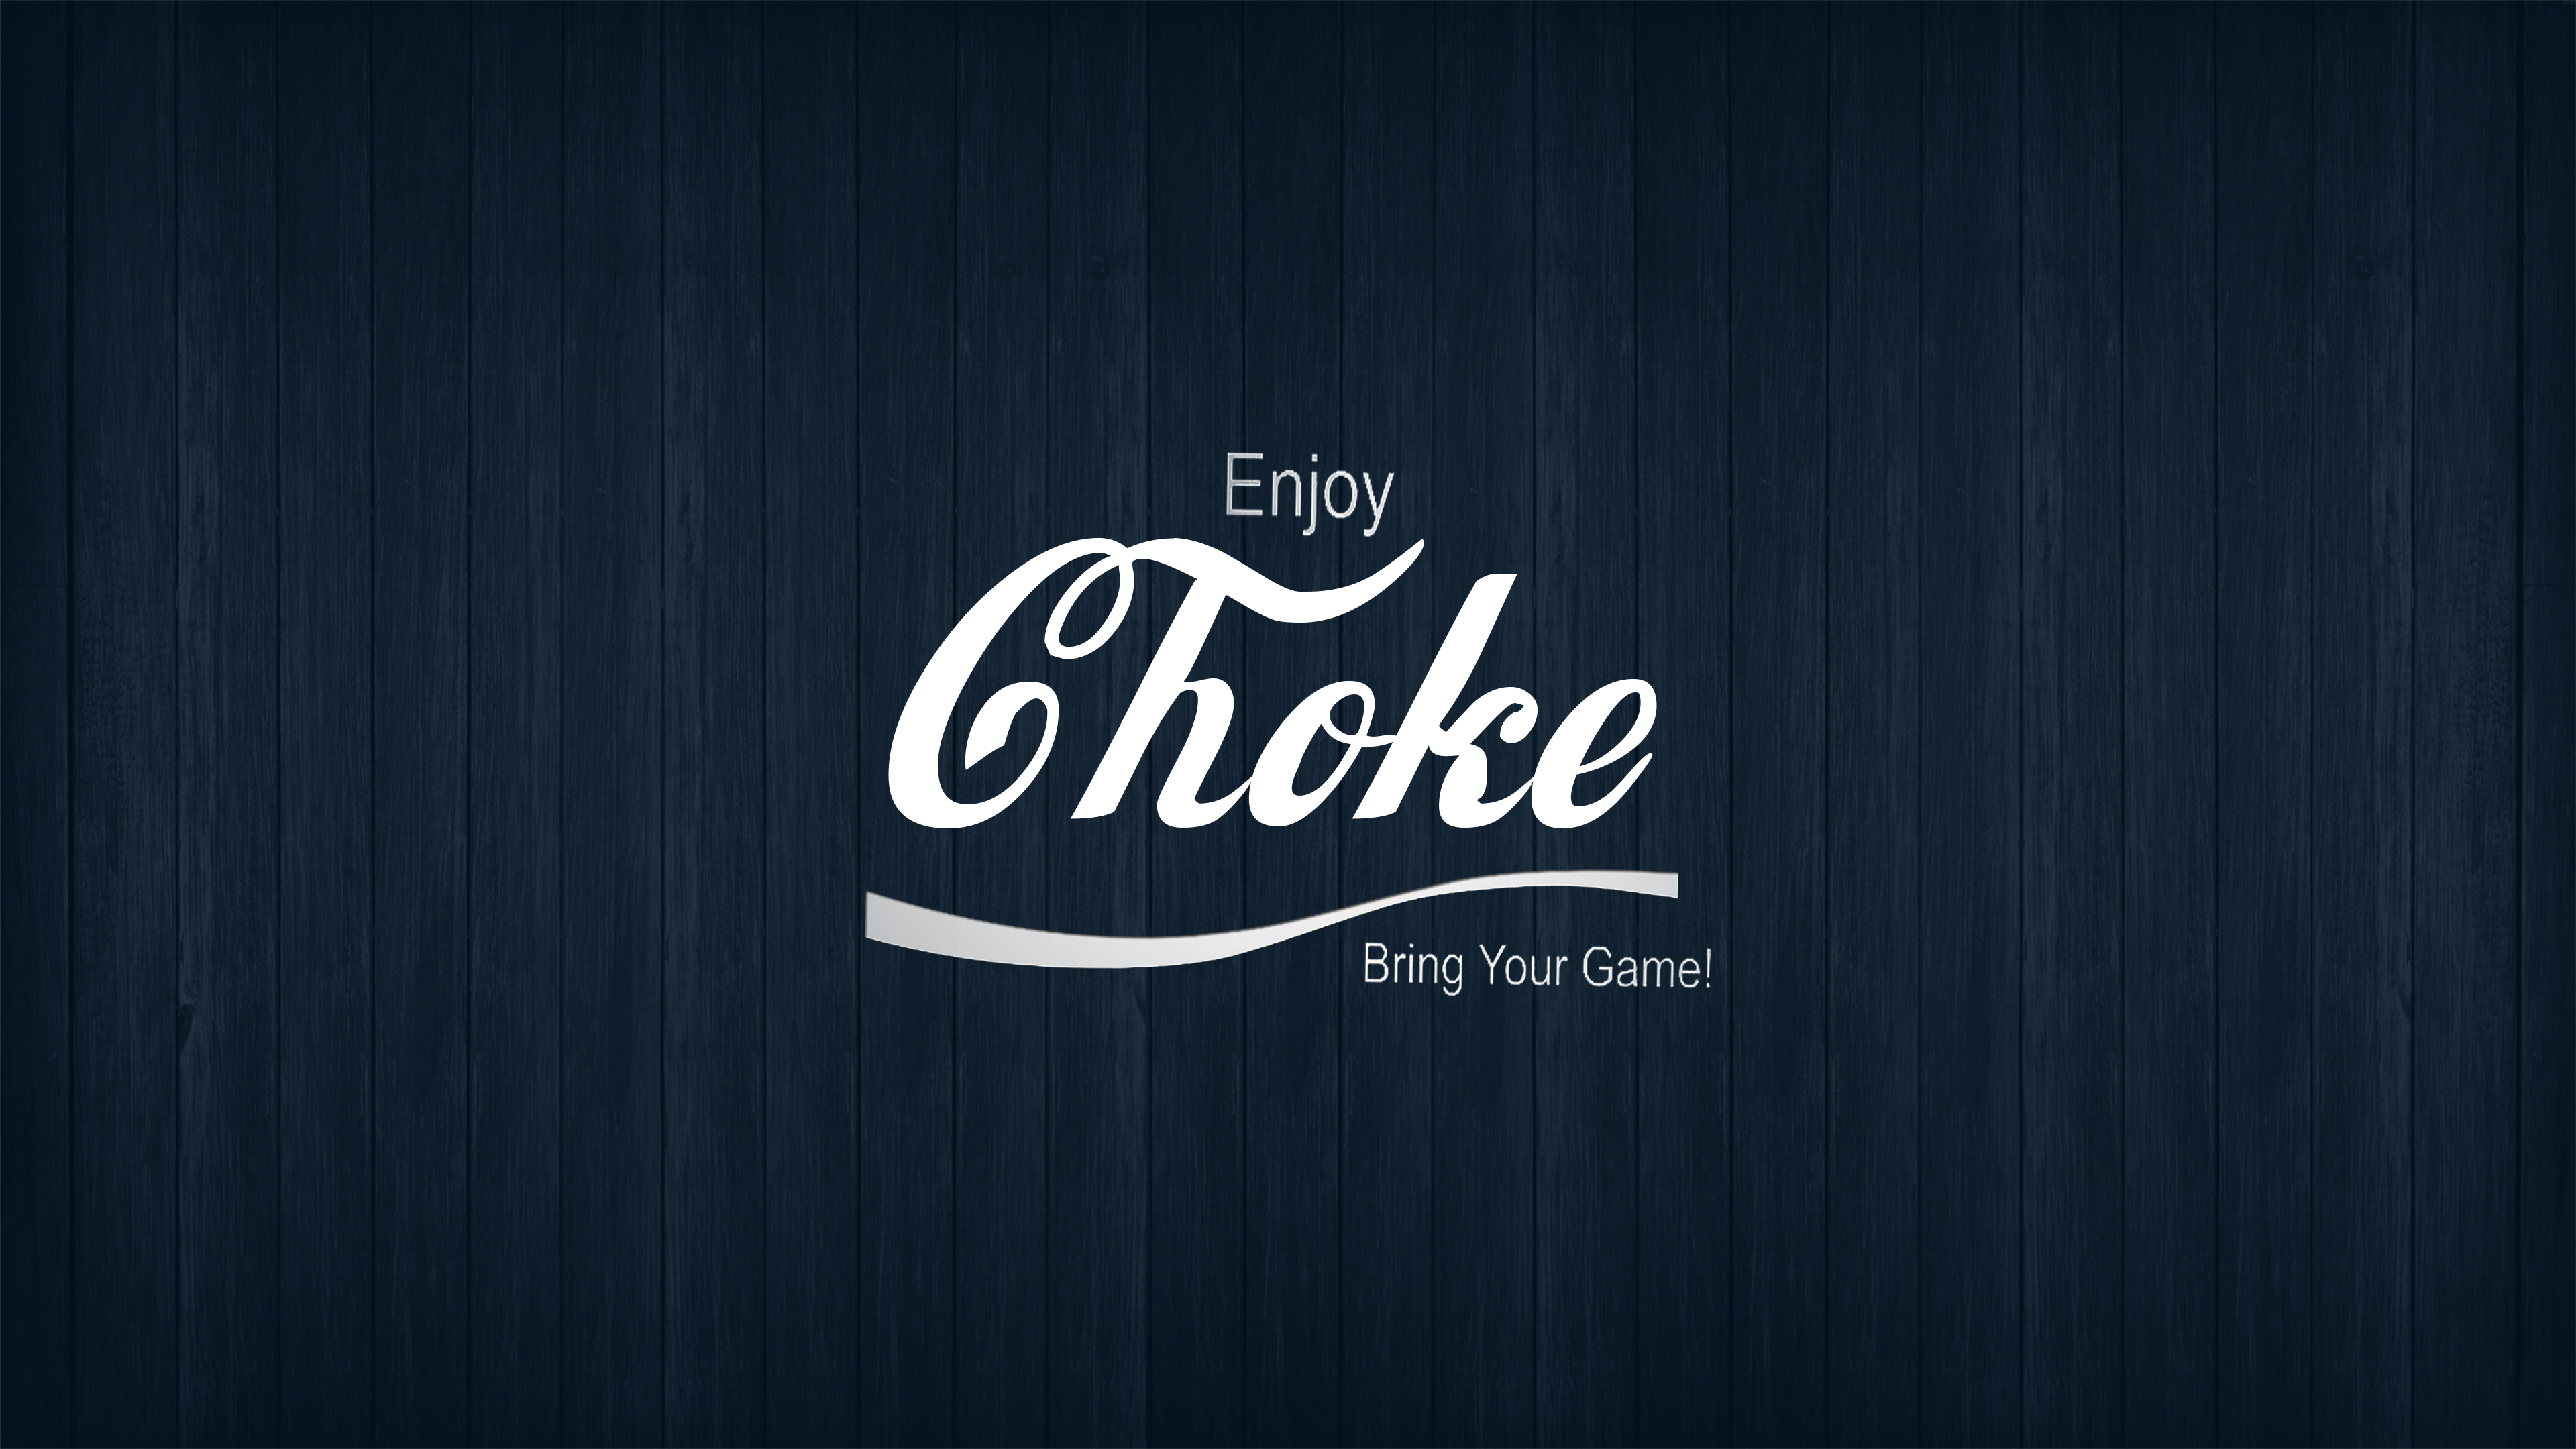 Jiu Jitsu Enjoy Choke Blue Wood Background